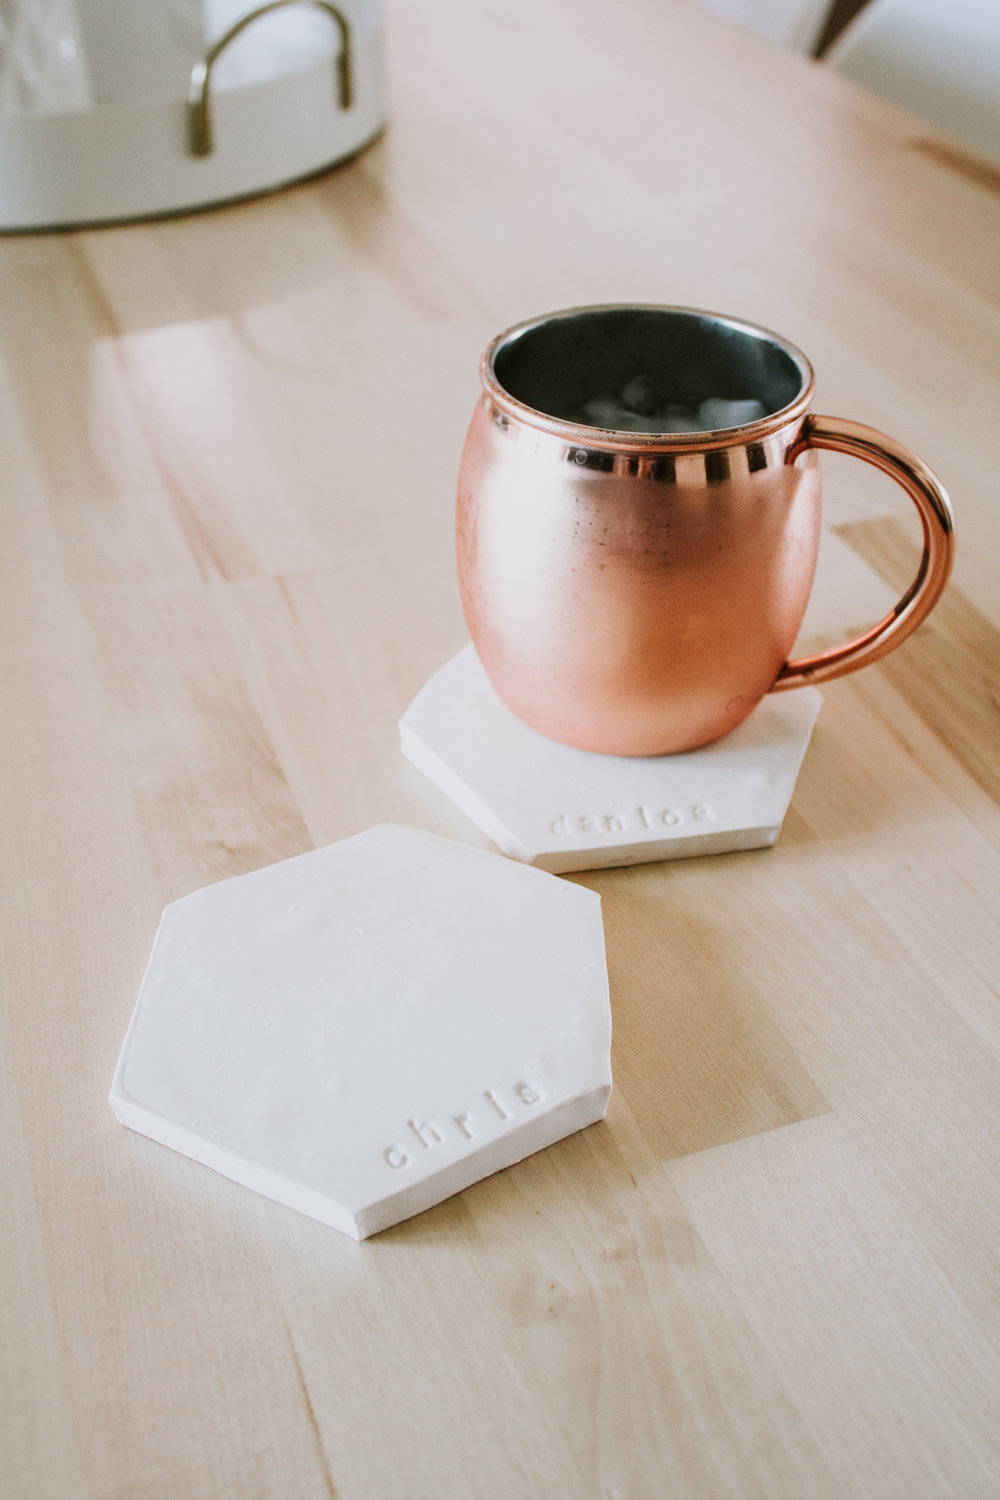 DIY Clay Coasters by Refined Design - personalized clay coasters you can make from home! Perfect craft project and gift idea for weddings, Christmas, and birthdays.